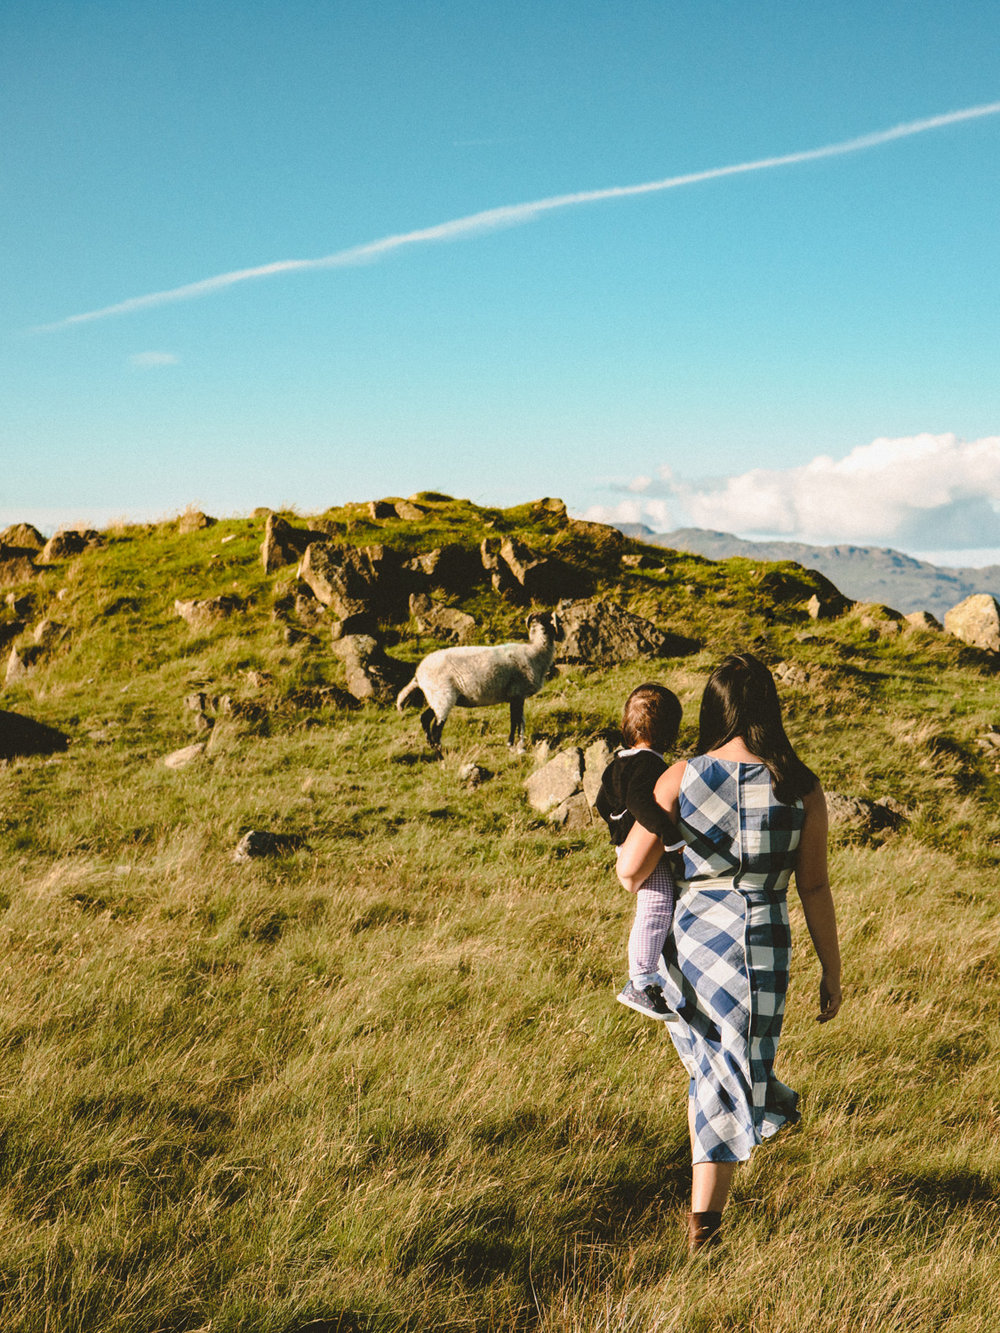 The hills of the Lake District were covered with sheep. A treat for a traveling baby.